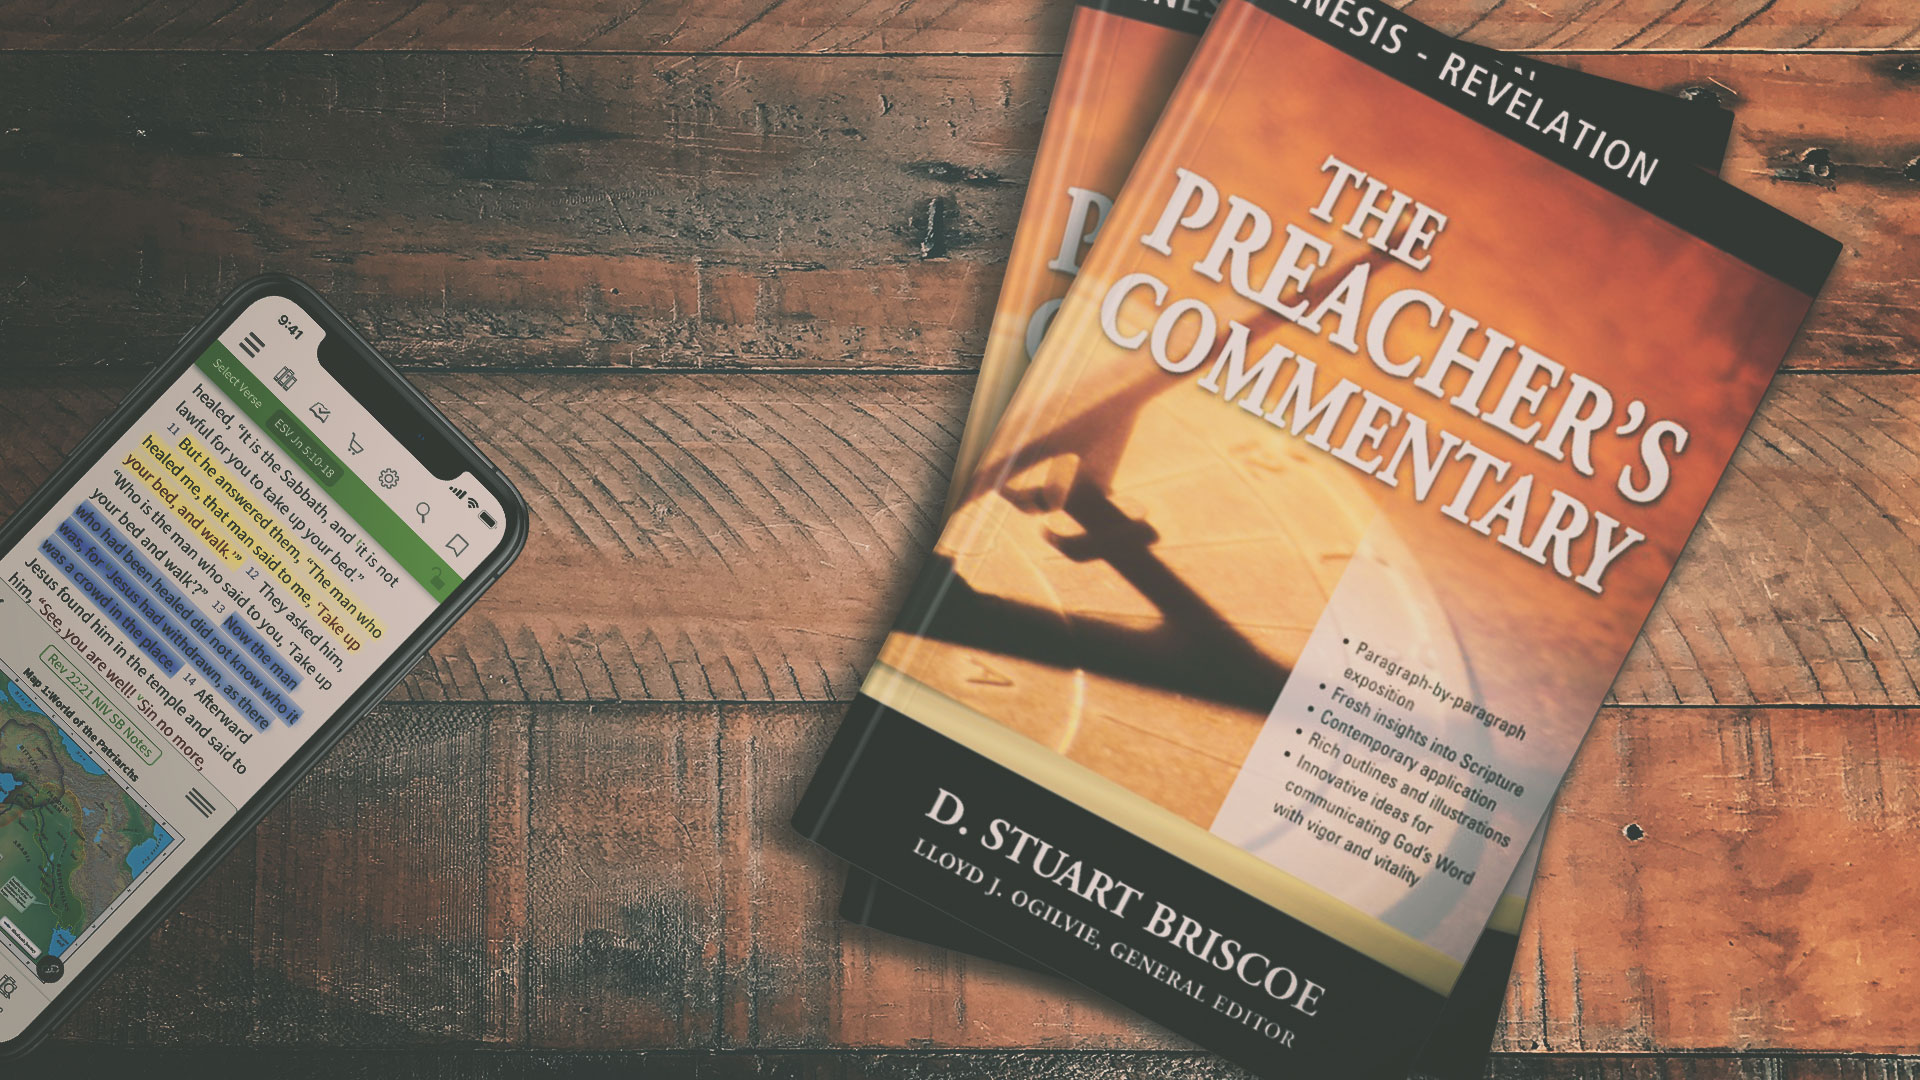 the preacher's commentary series